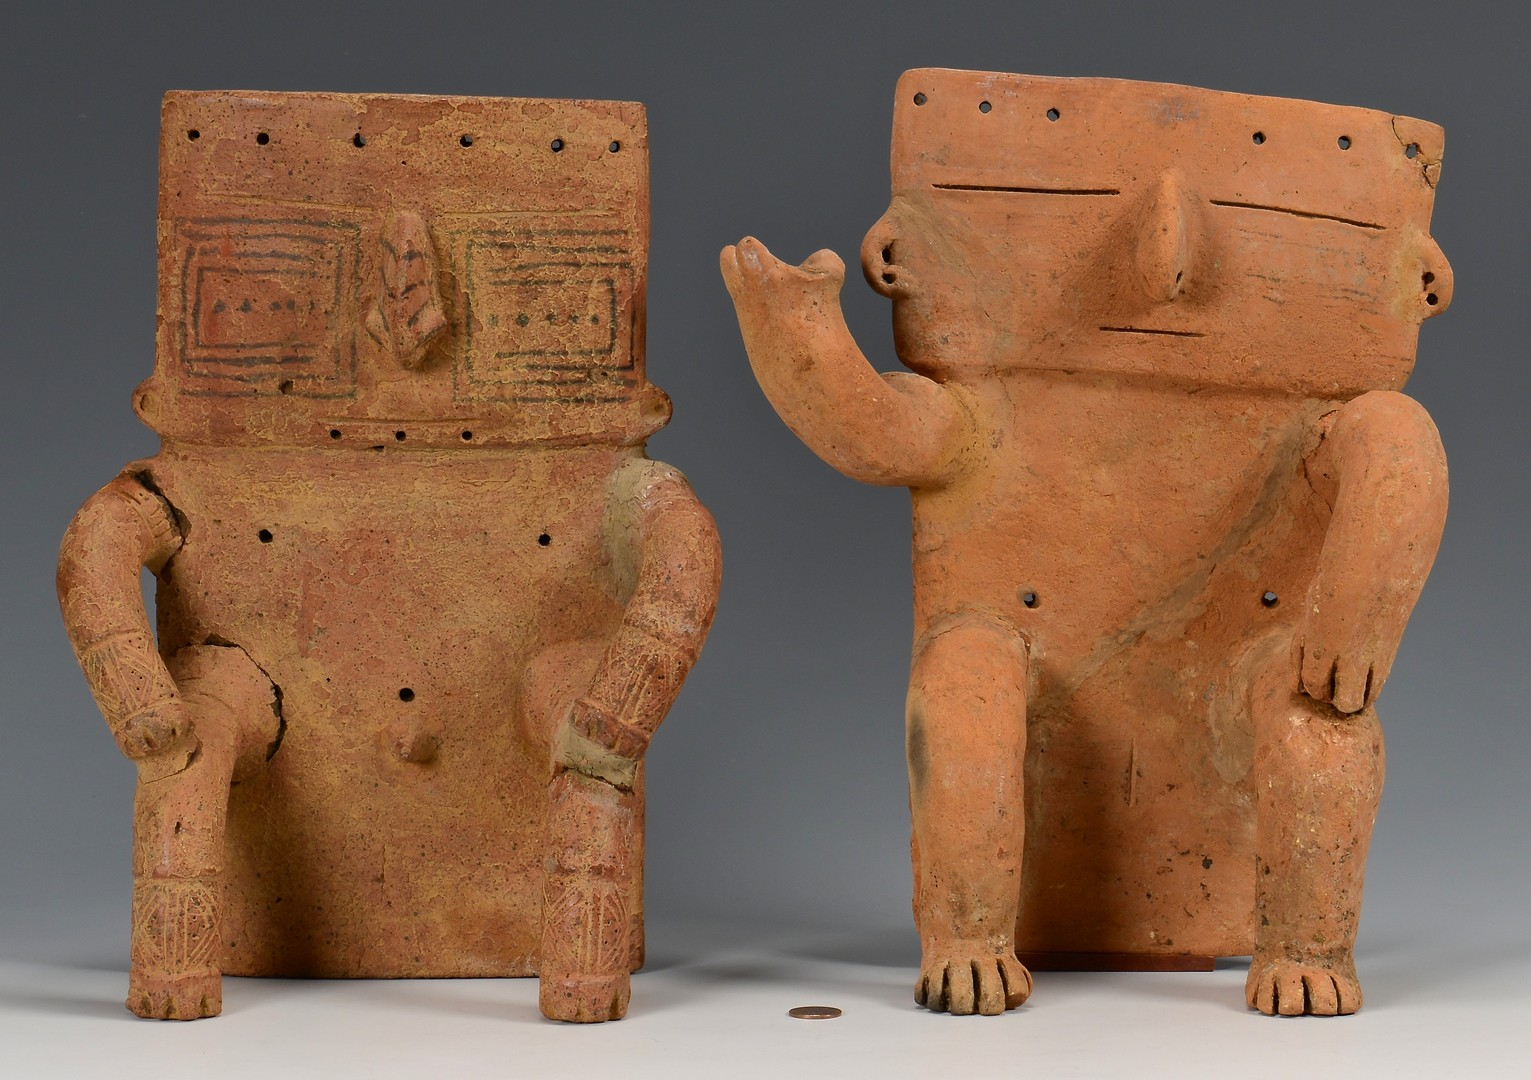 Lot 518: 2 South American Quimbaya Pottery Figures